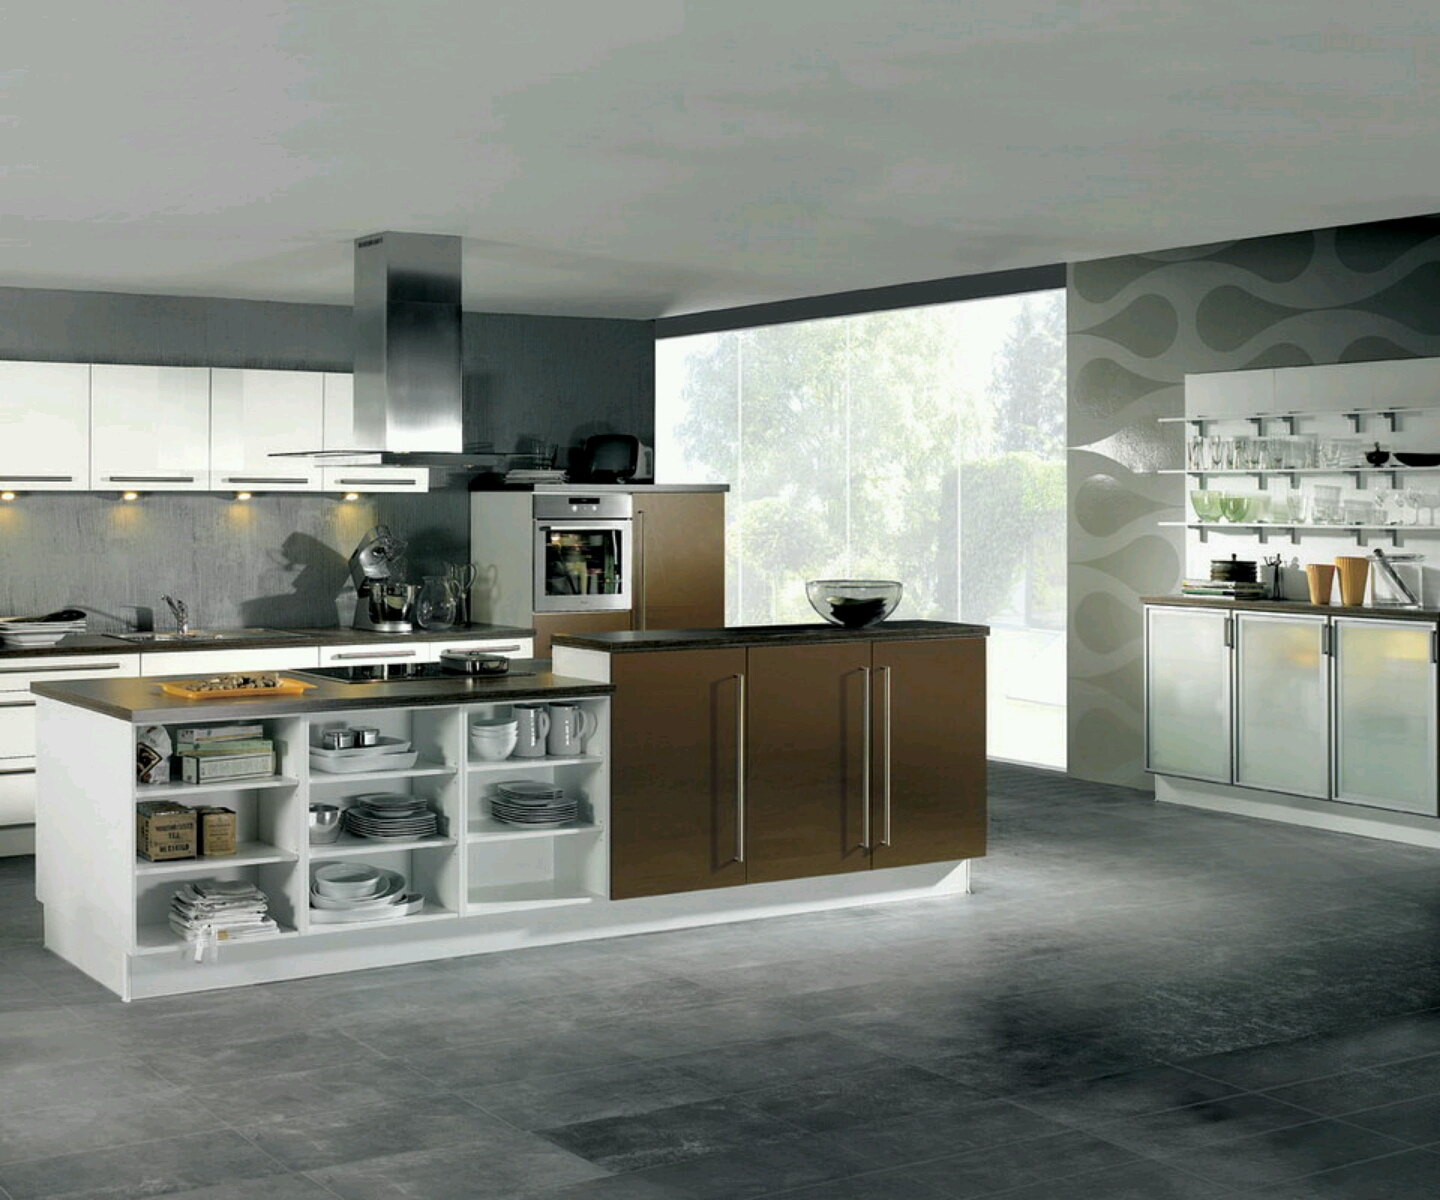 New home designs latest ultra modern kitchen designs ideas for Modern kitchen designs gallery